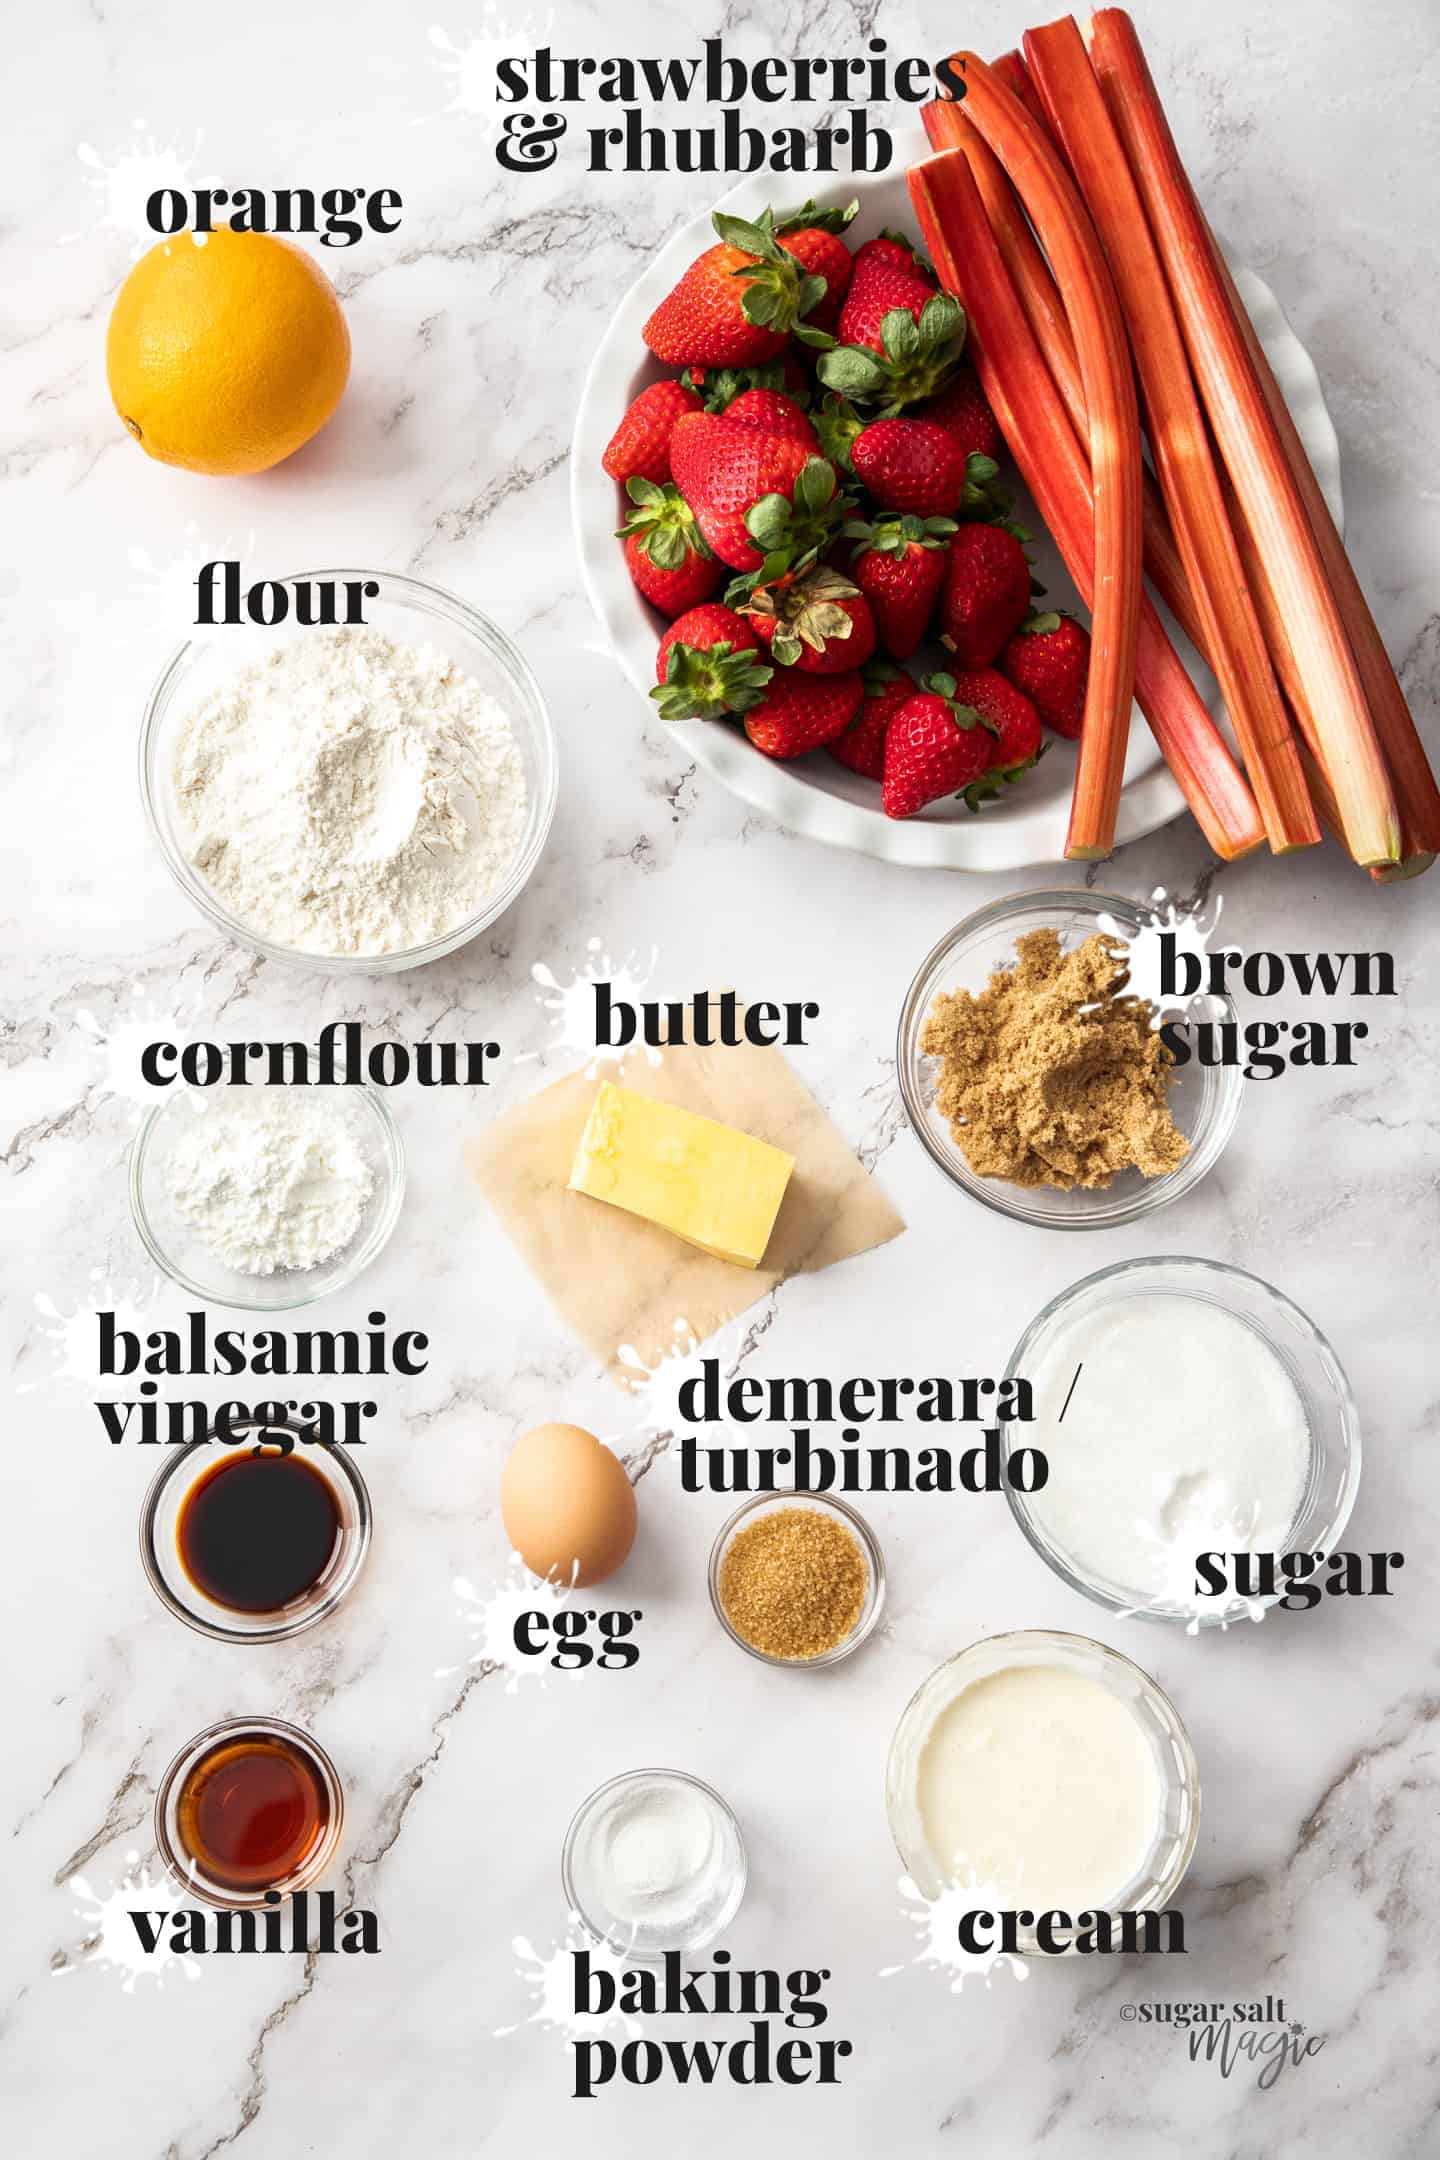 Ingredients for strawberry rhubarb cobbler recipe laid out on a marble benchtop.